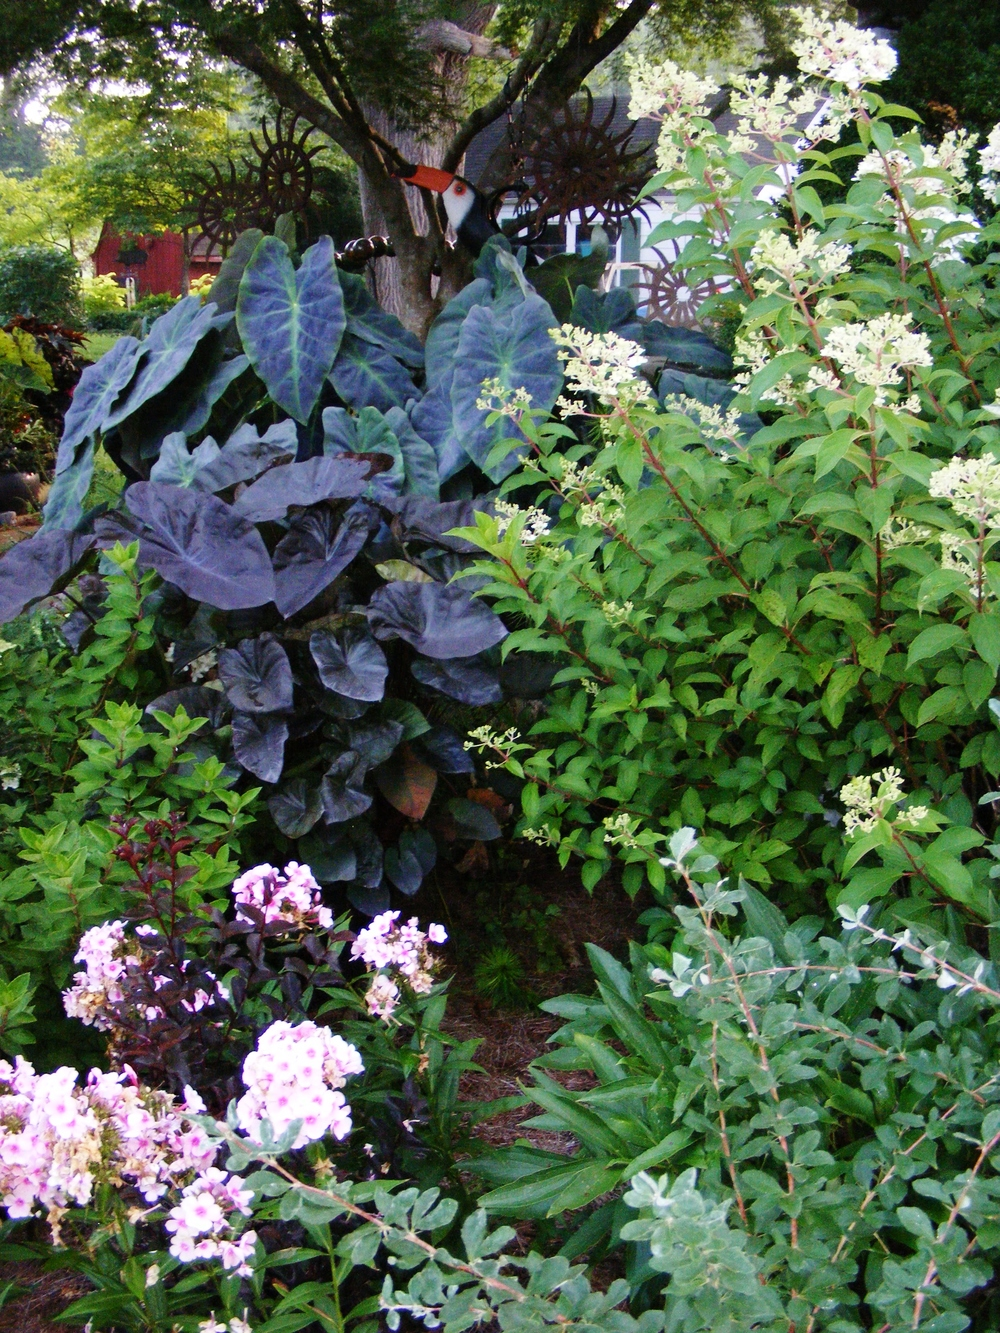 Mixed colocasia, phlox, and hydrangea